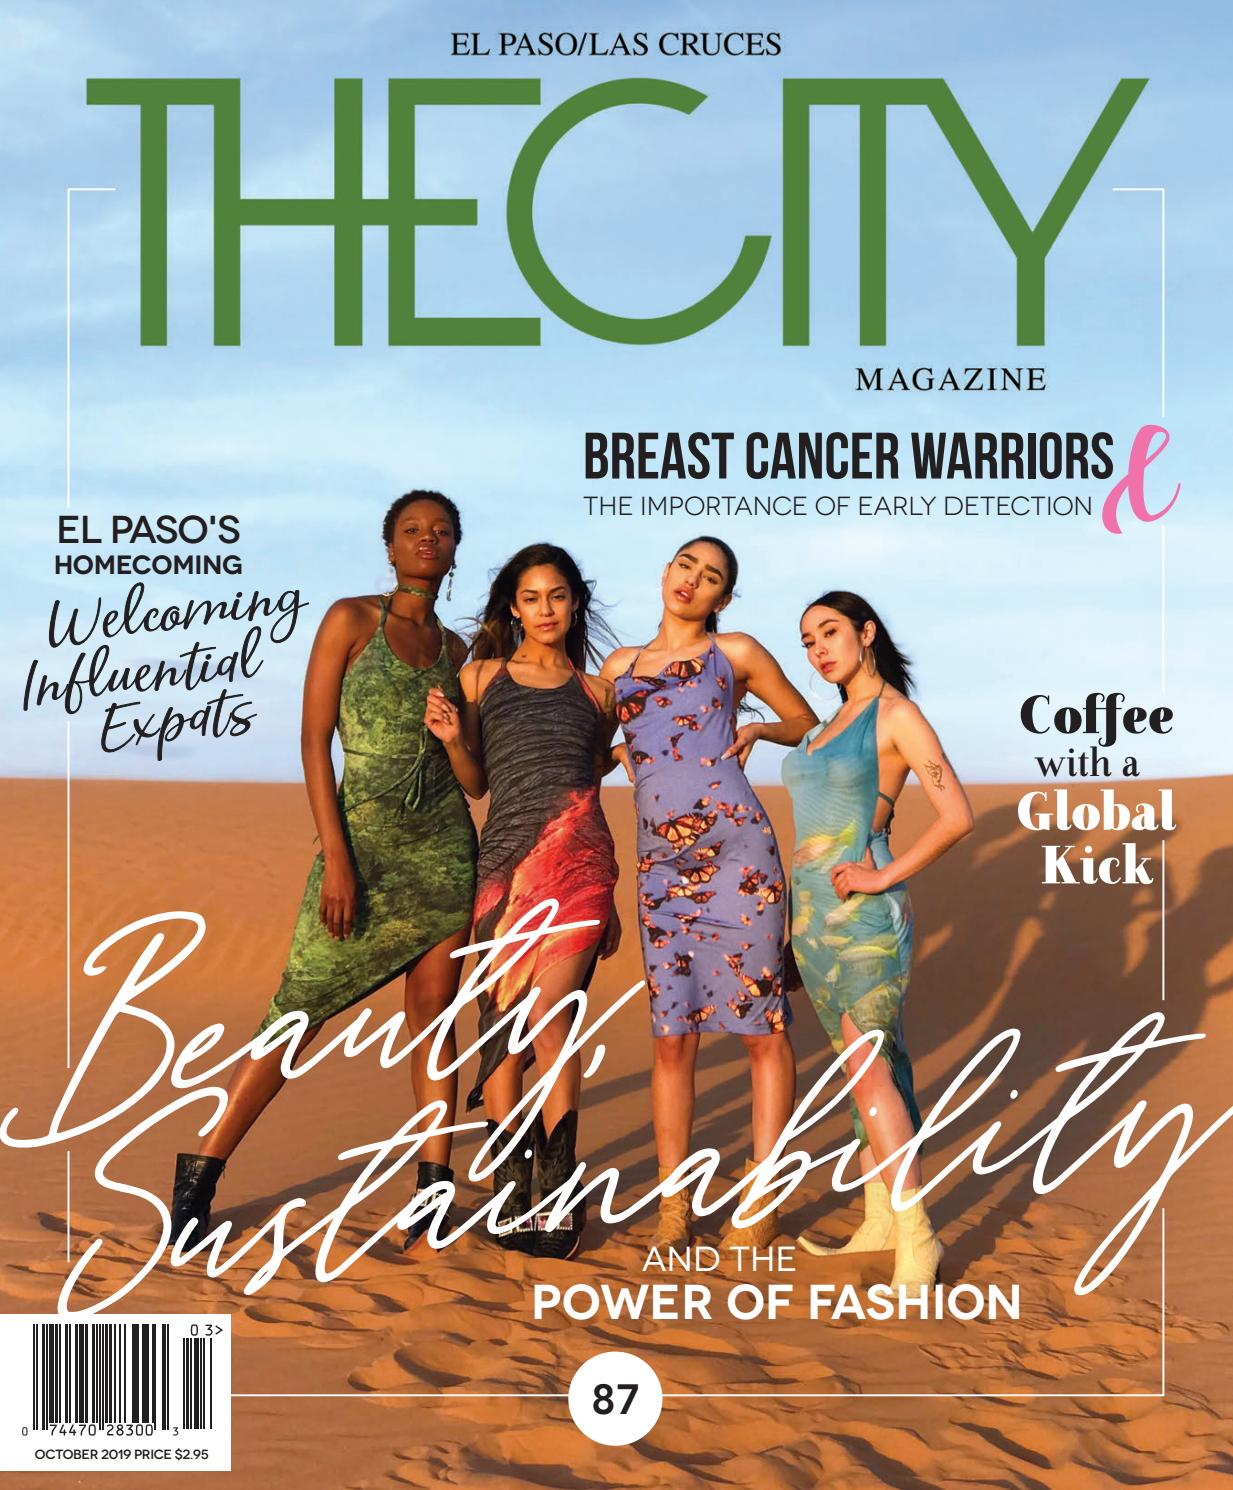 The City Magazine El Paso October 2019 By Thecity Magazine El Paso Las Cruces Issuu